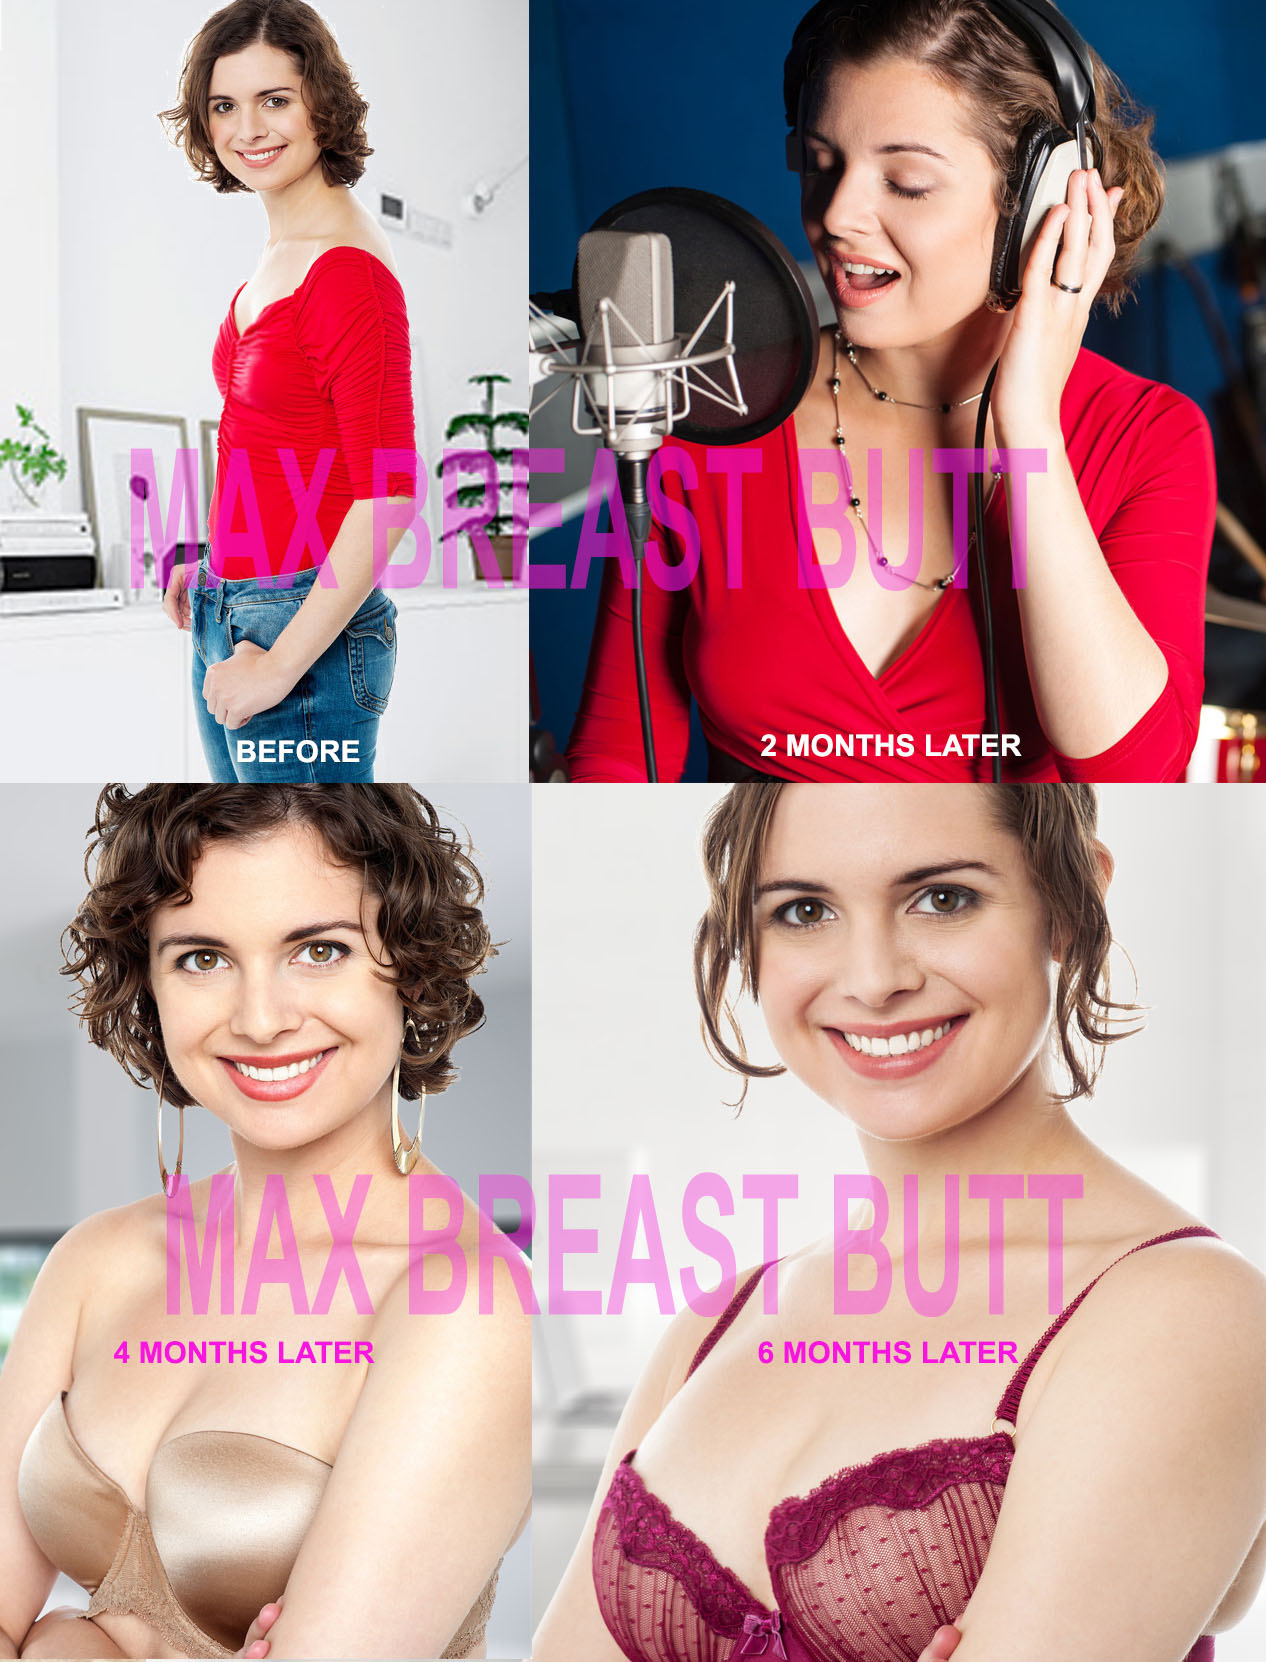 MAX BREAST BUTT - The Natural Breast Enlargement Butt Enhancement Pills. The best for Menopause or Perimenopause Treatment for Women Testimonials